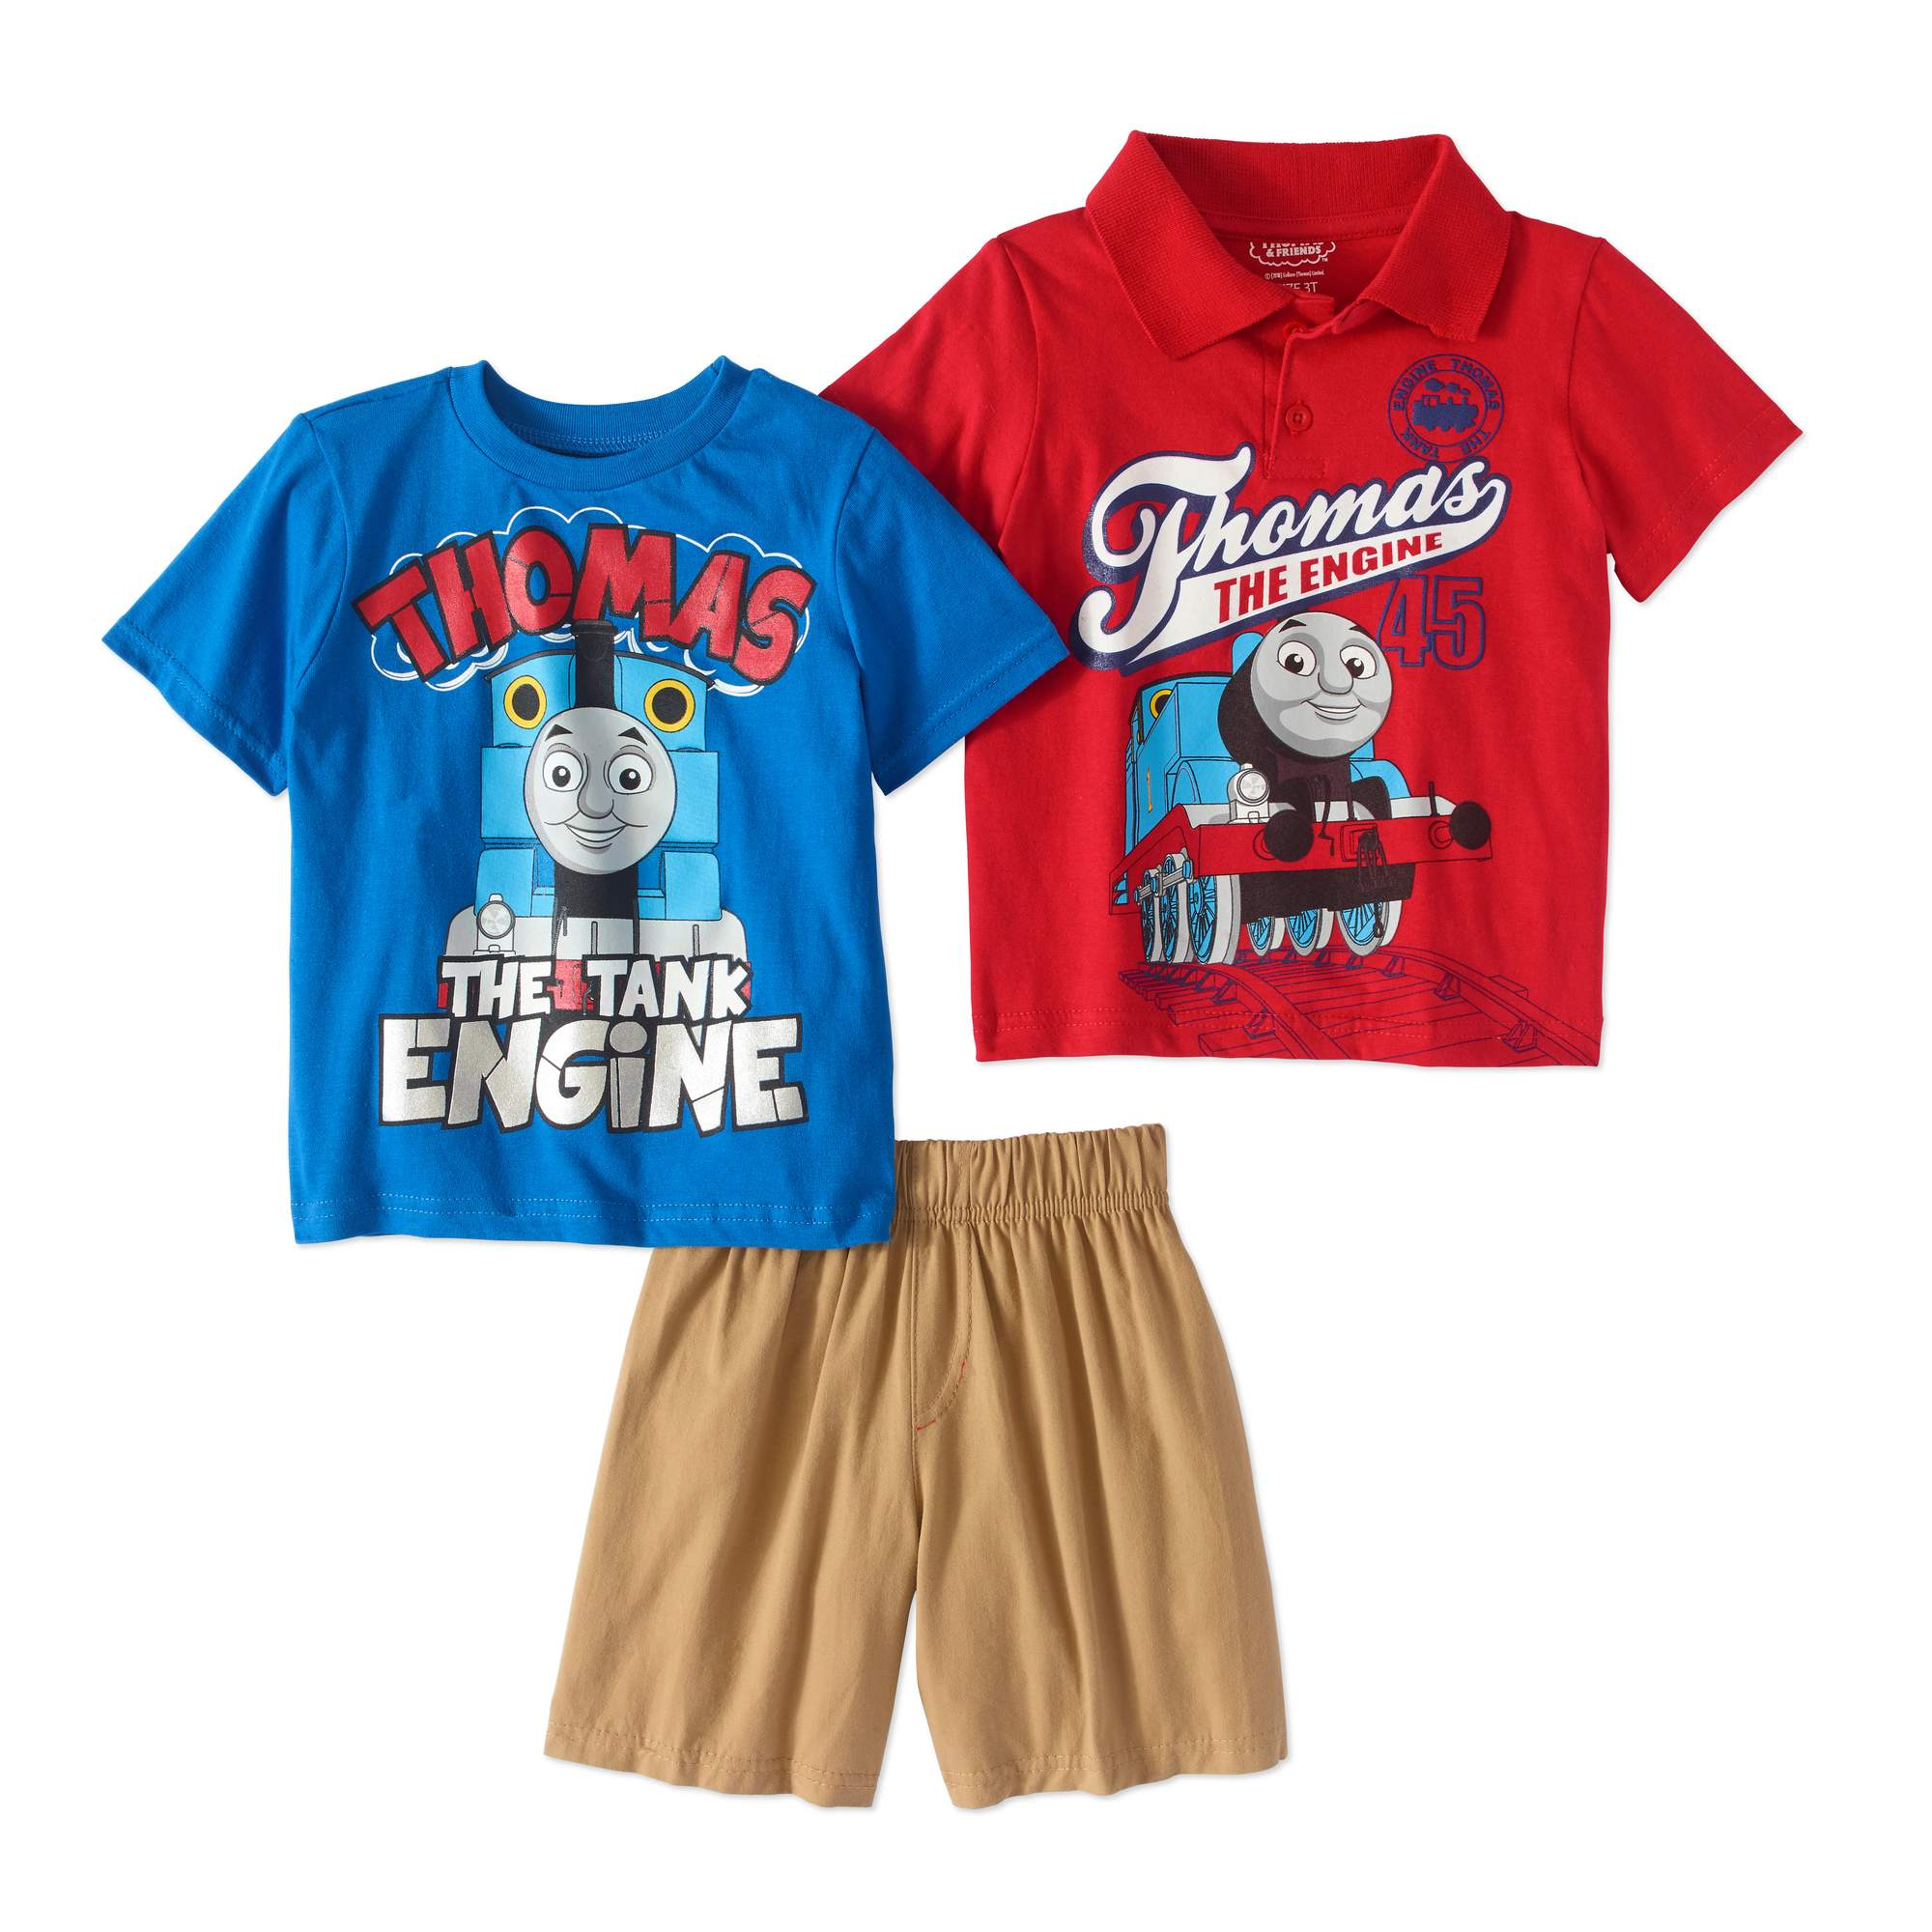 Thomas the Train Toddler Boy Polo Shirt, T-shirt & Shorts, 3pc Outfit Set